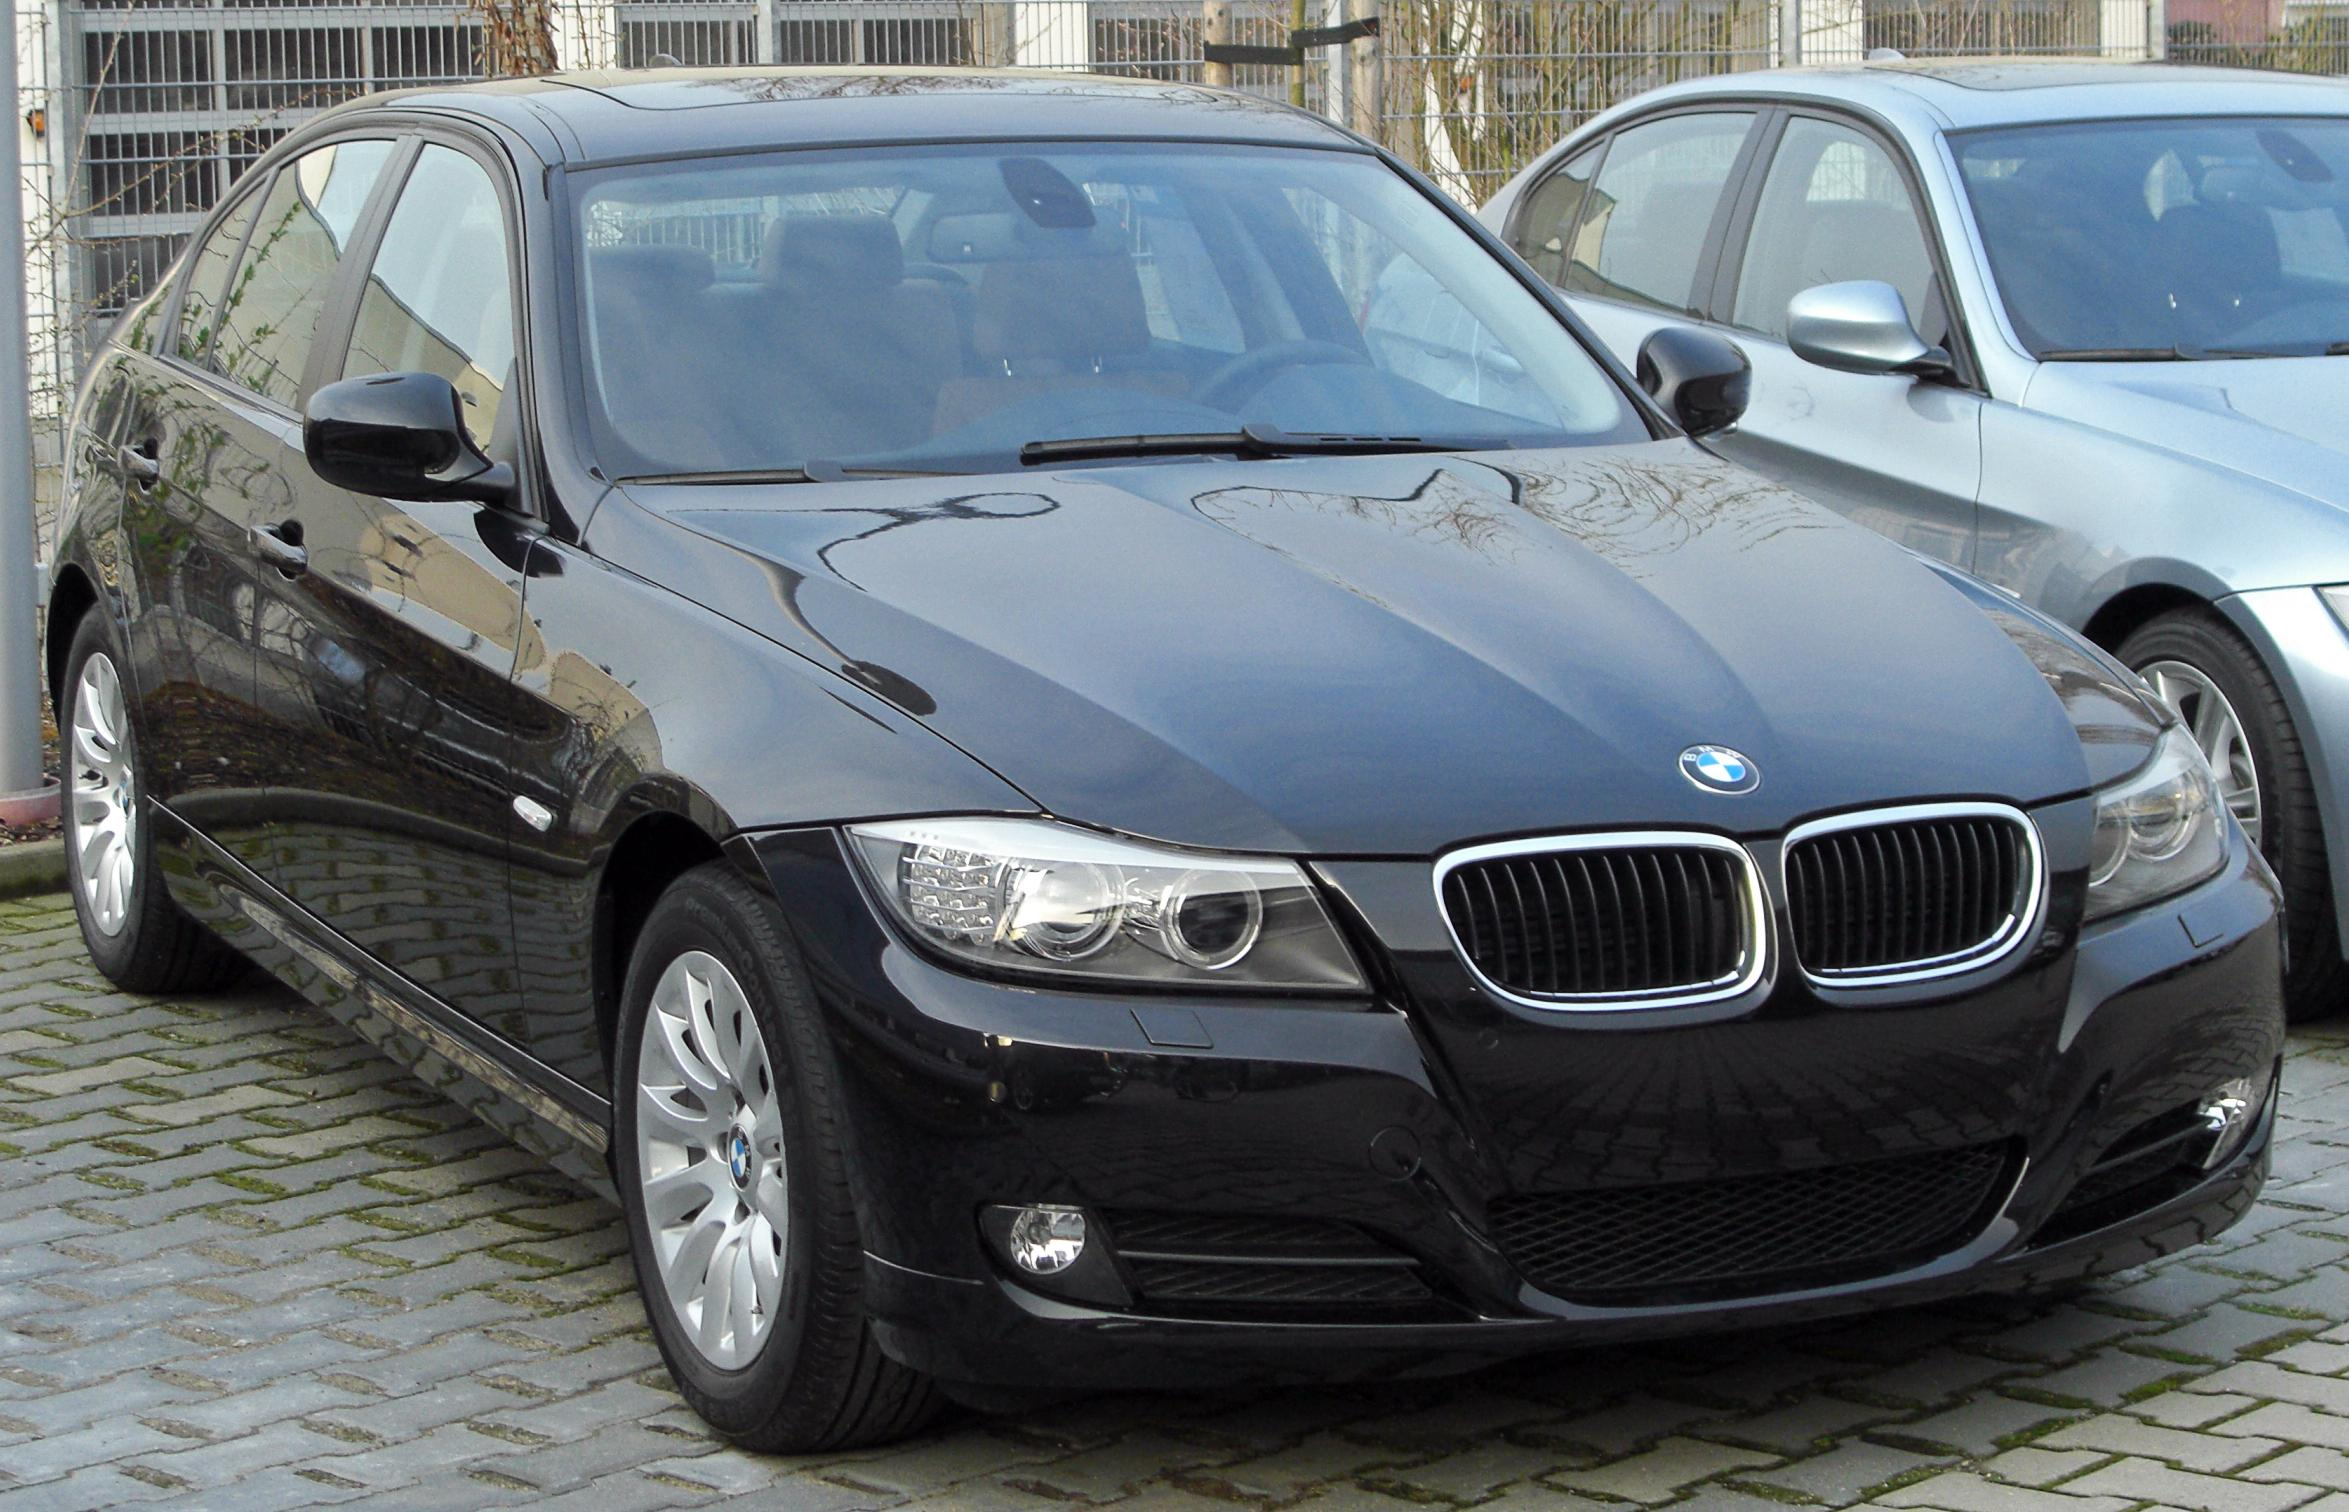 file bmw 3er v facelift front wikimedia commons. Black Bedroom Furniture Sets. Home Design Ideas